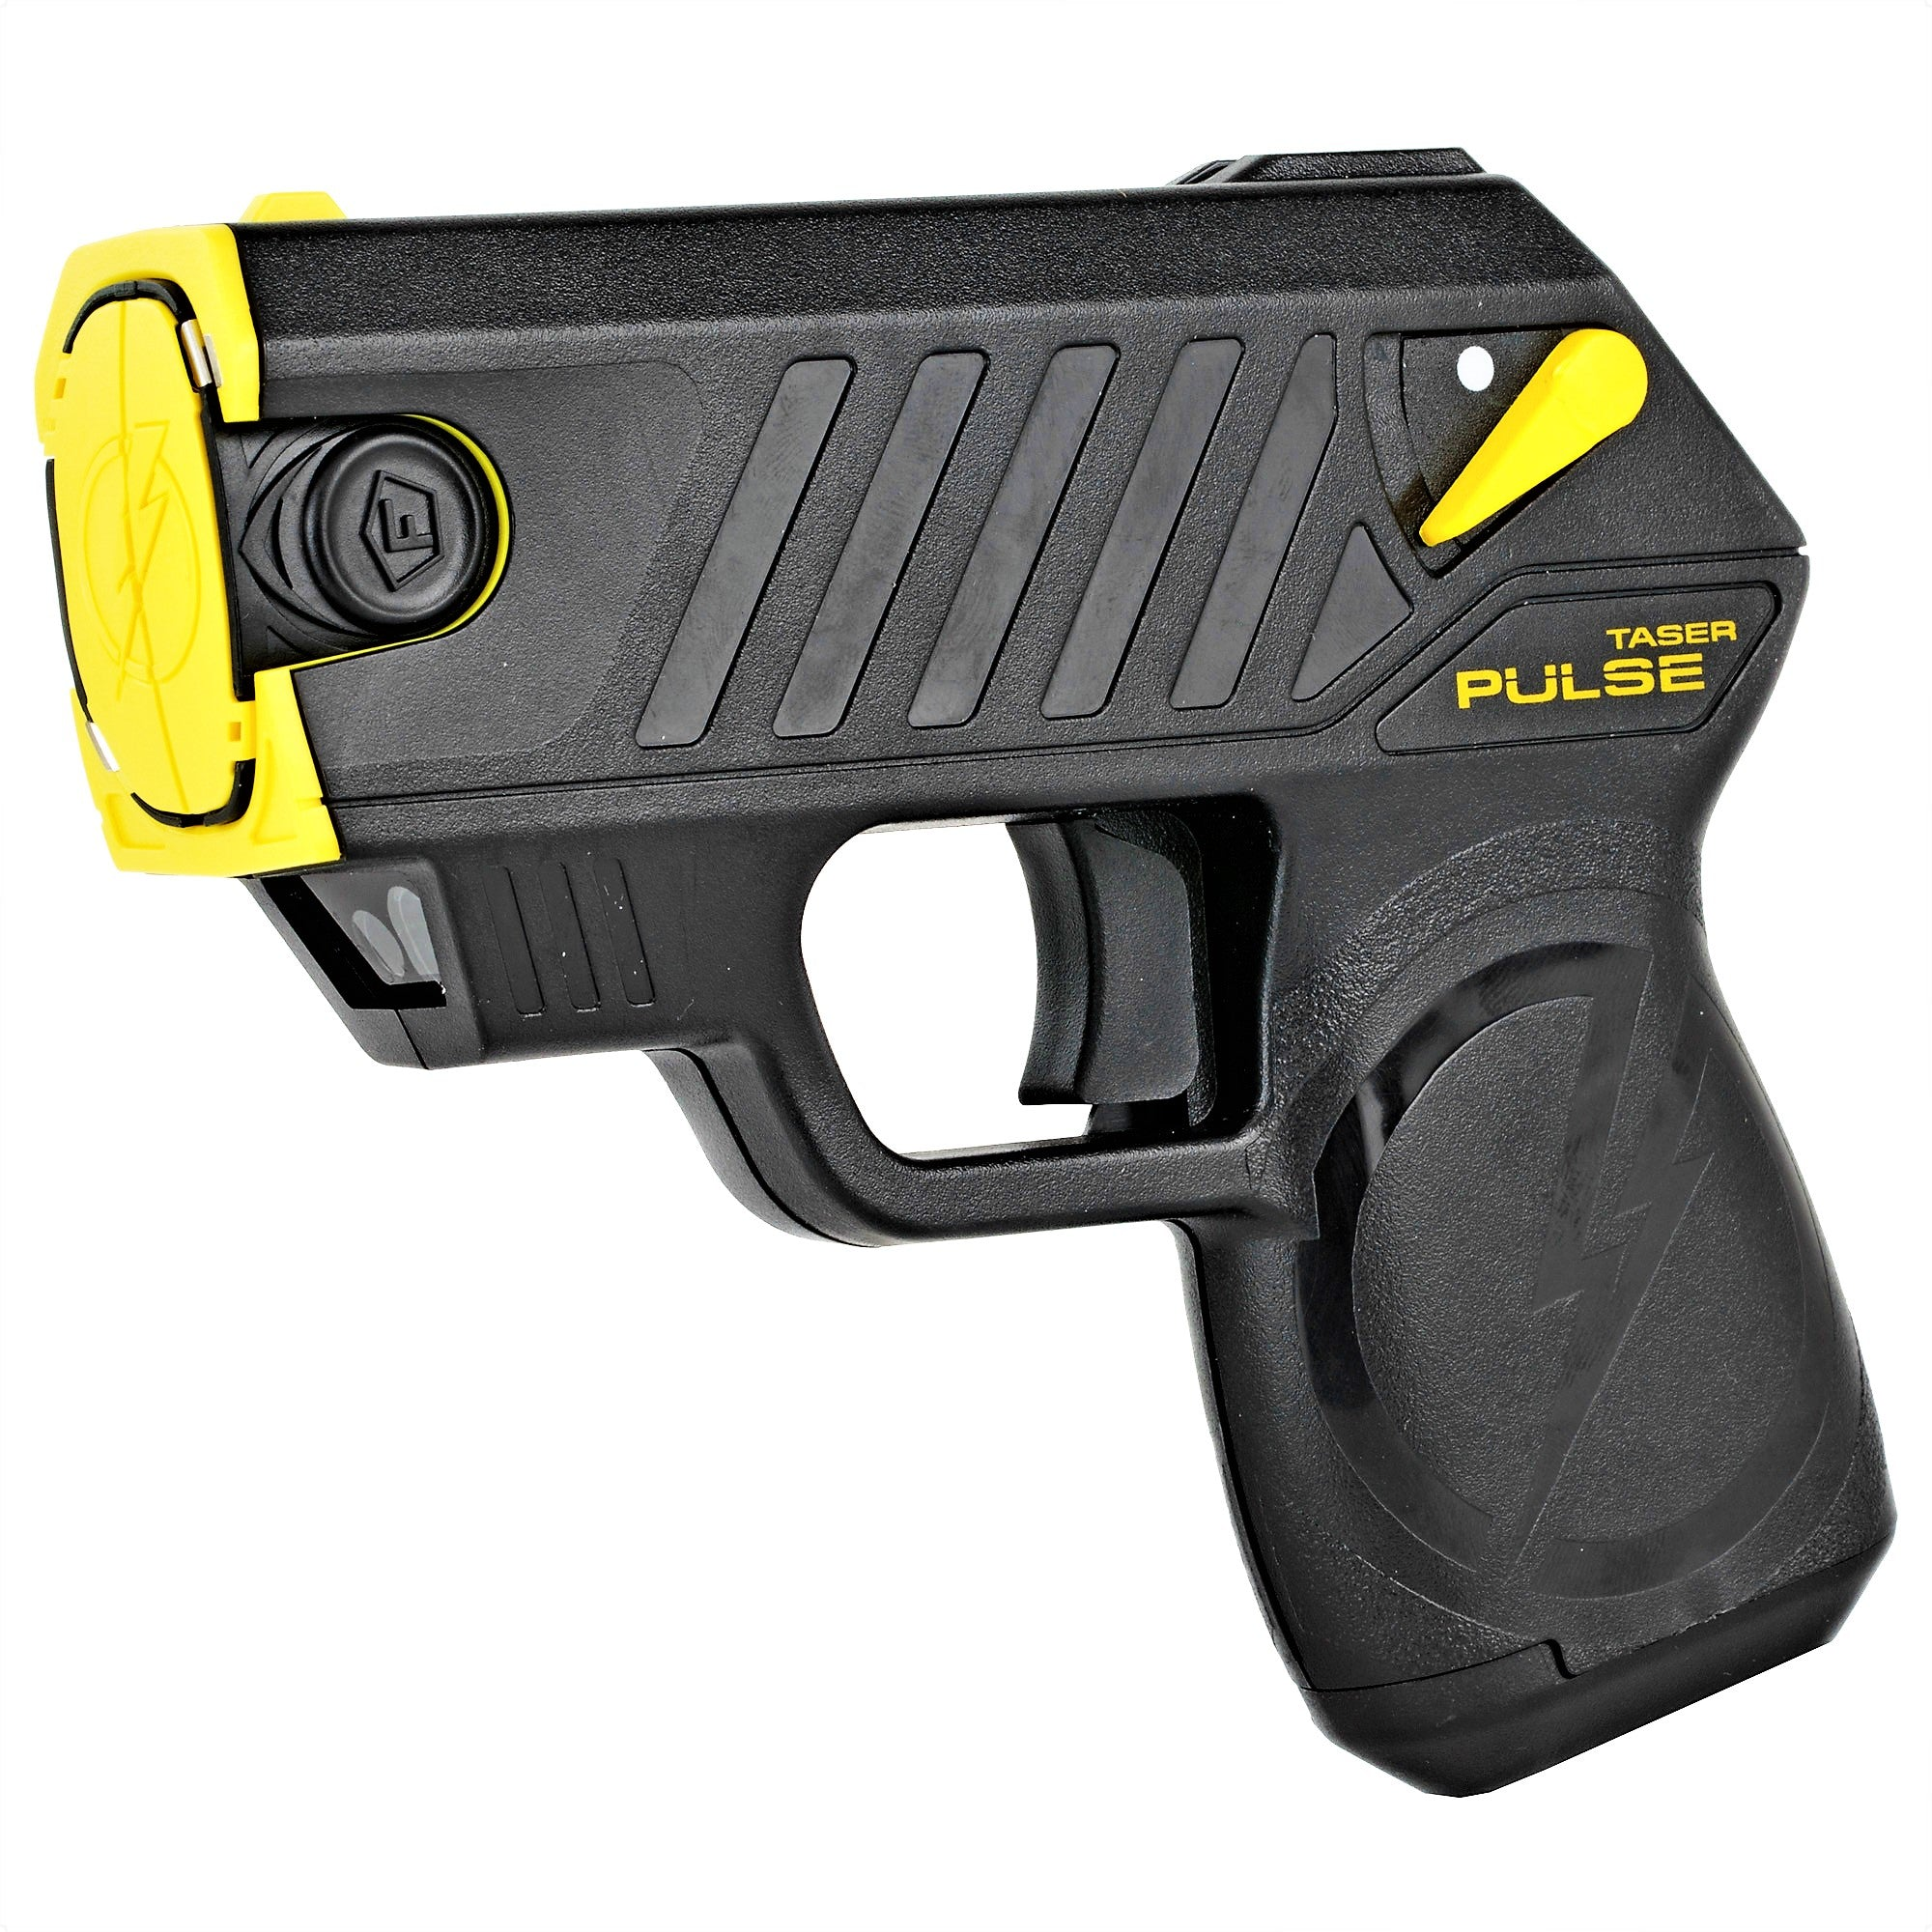 Taser Pulse With Laser, LED, 2 Live Cartridges